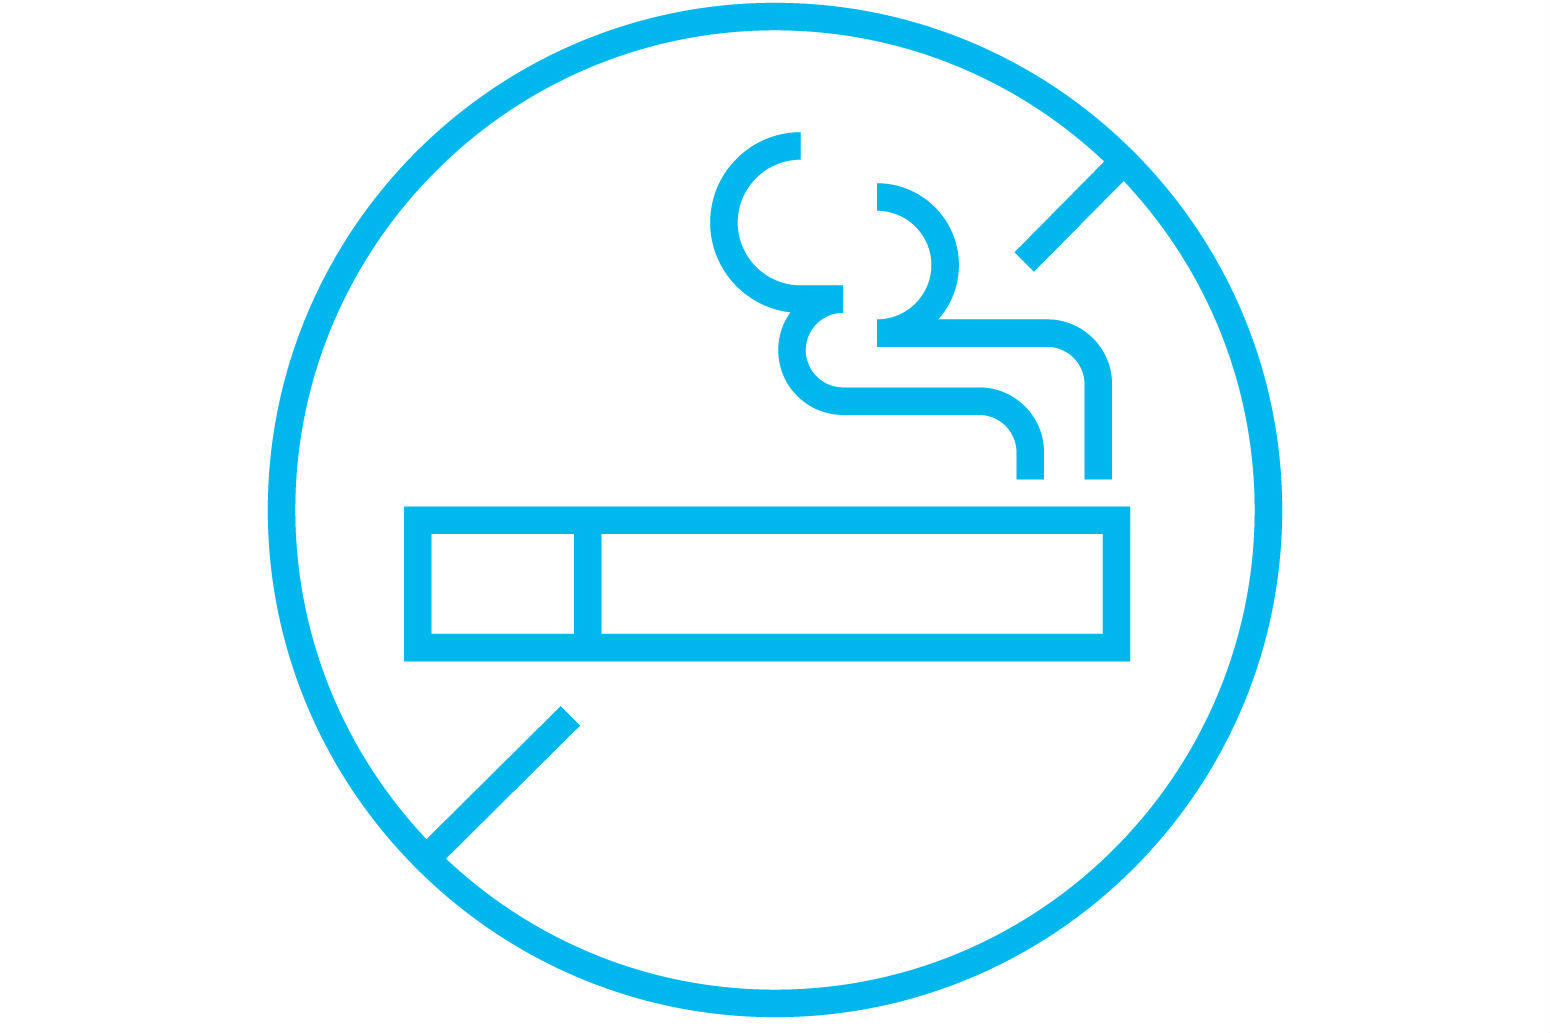 No smoking sign for tools on how to quit smoking